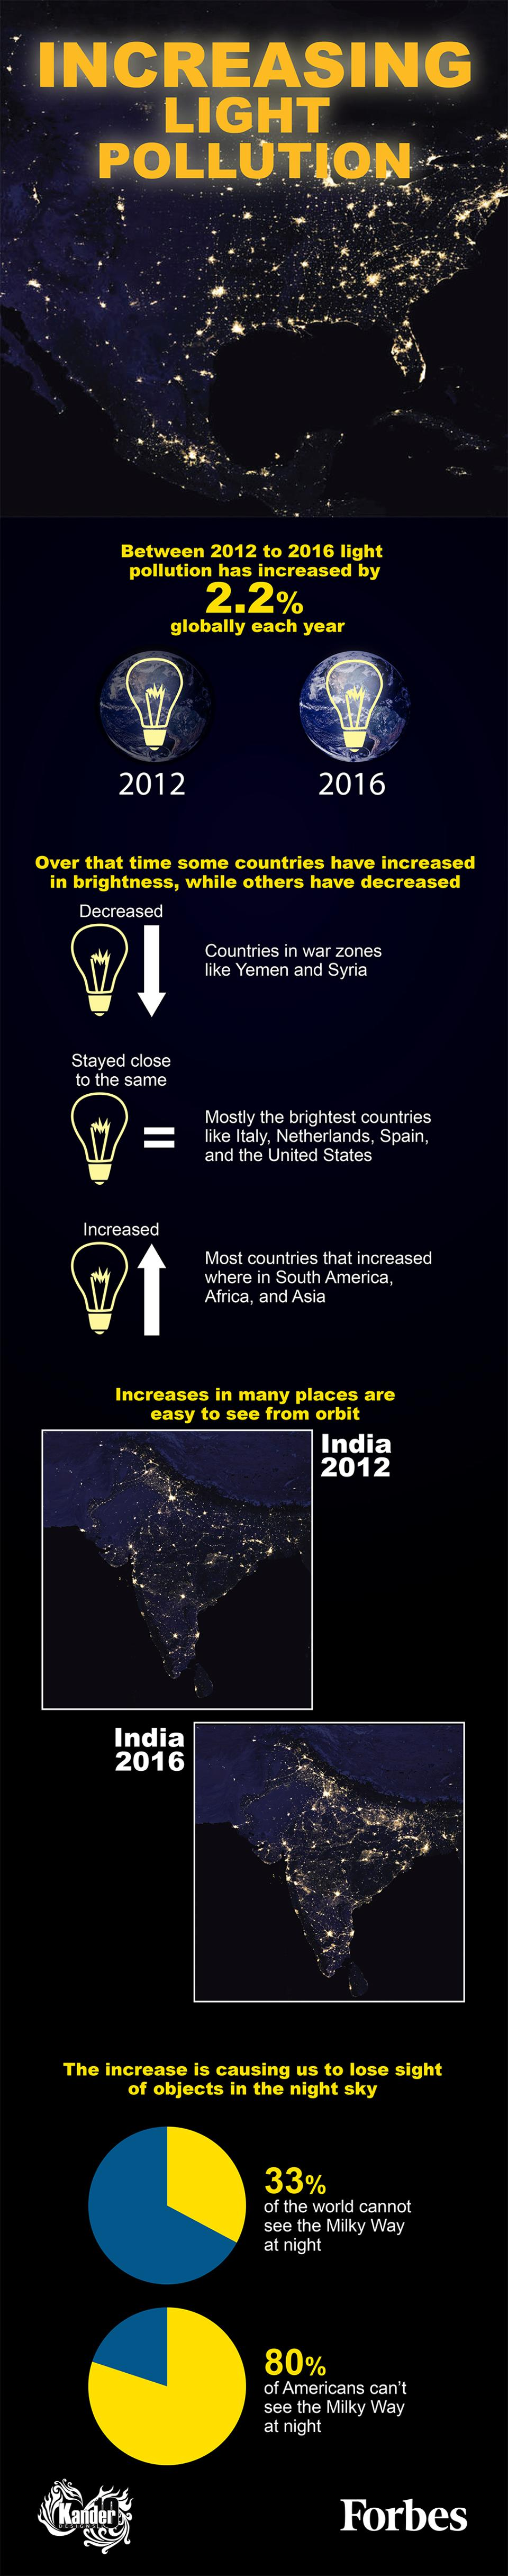 light-pollution-india-infographic